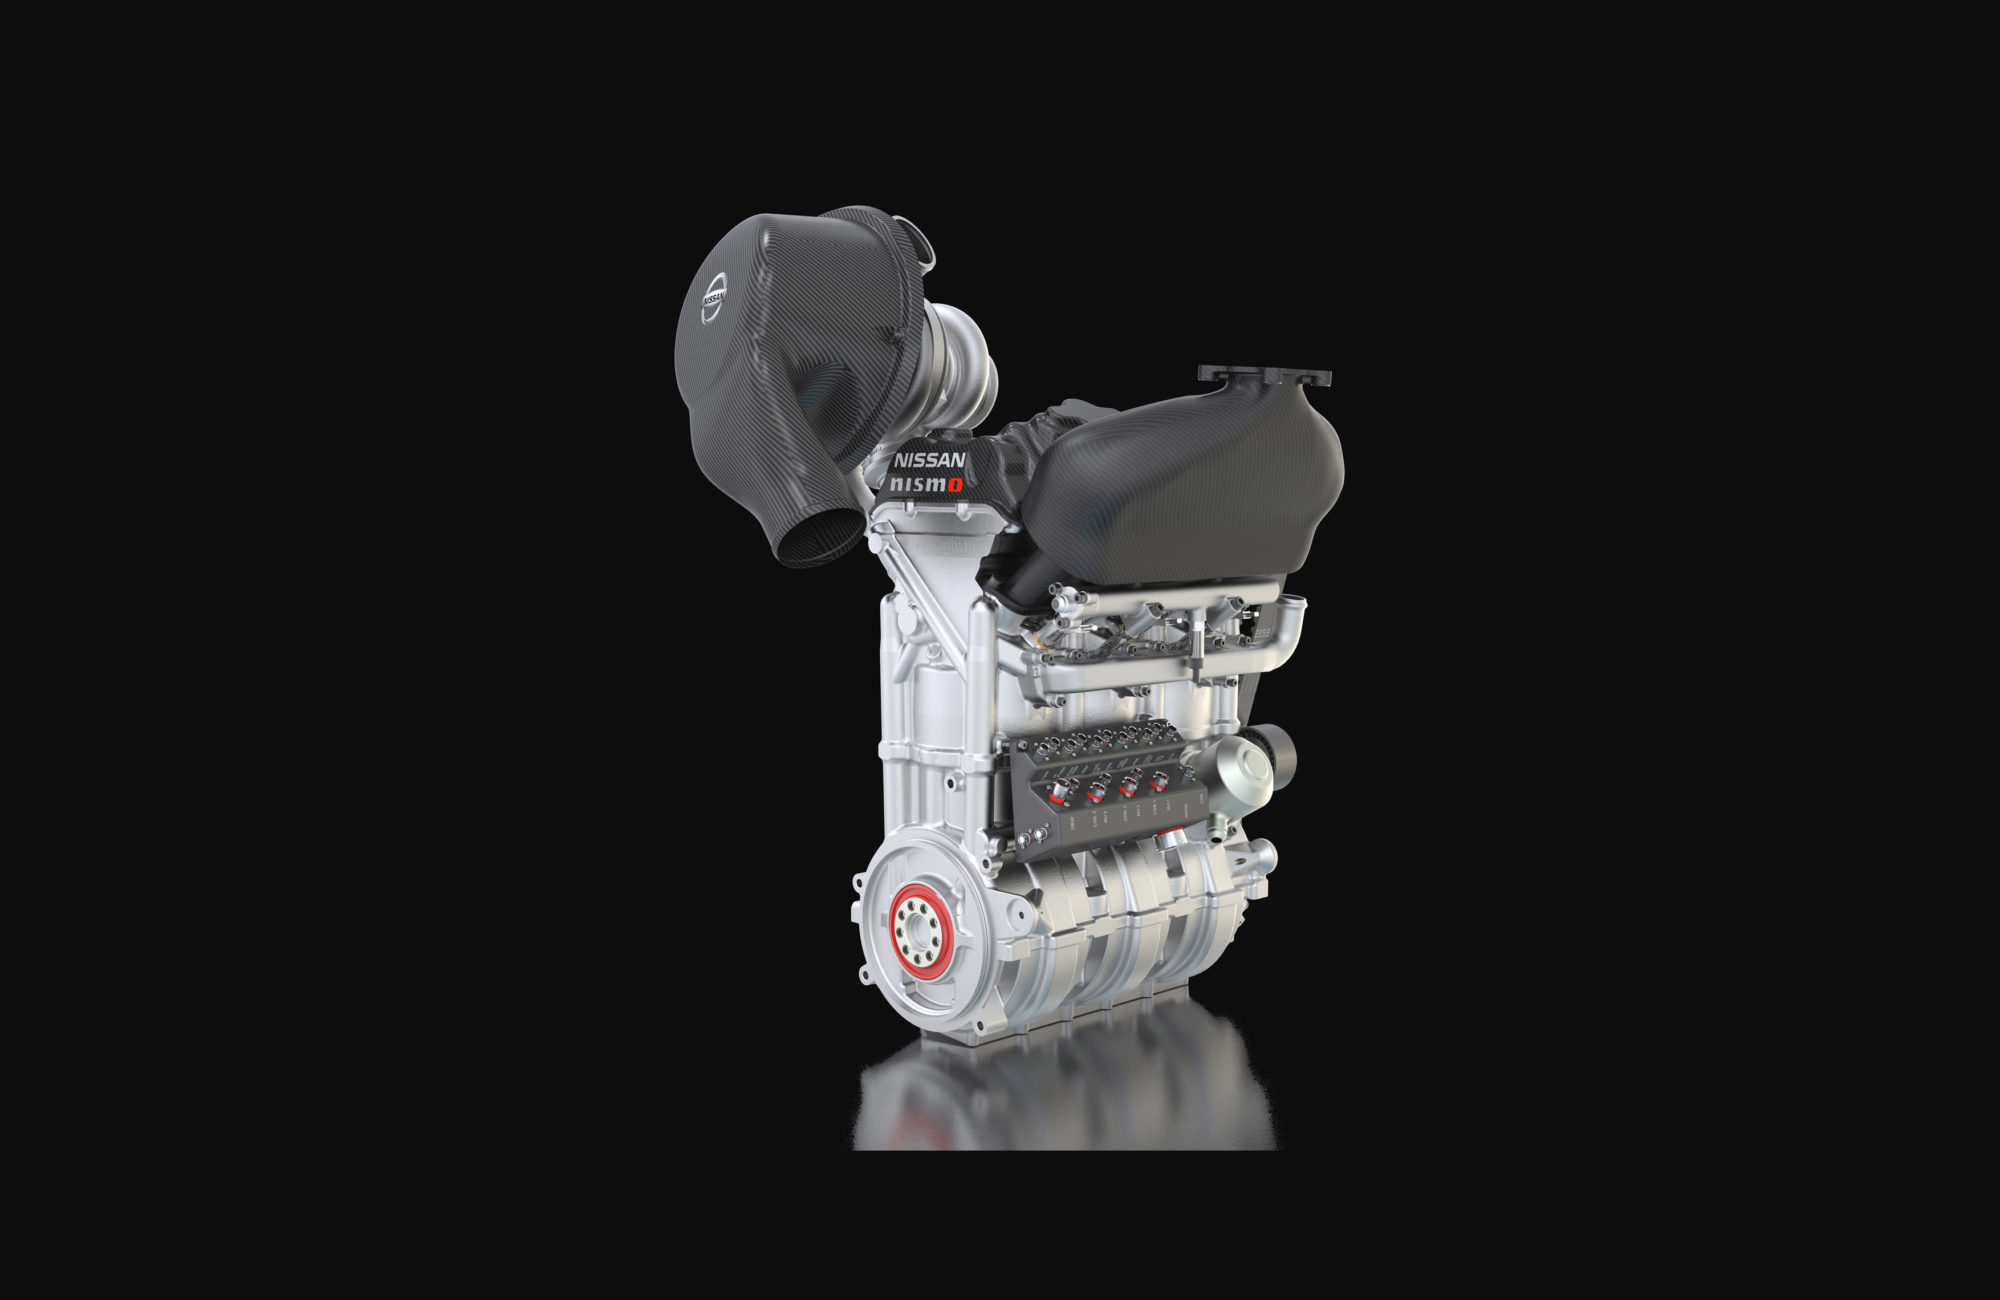 NEW NISSAN NISMO DIG-R ENGINE